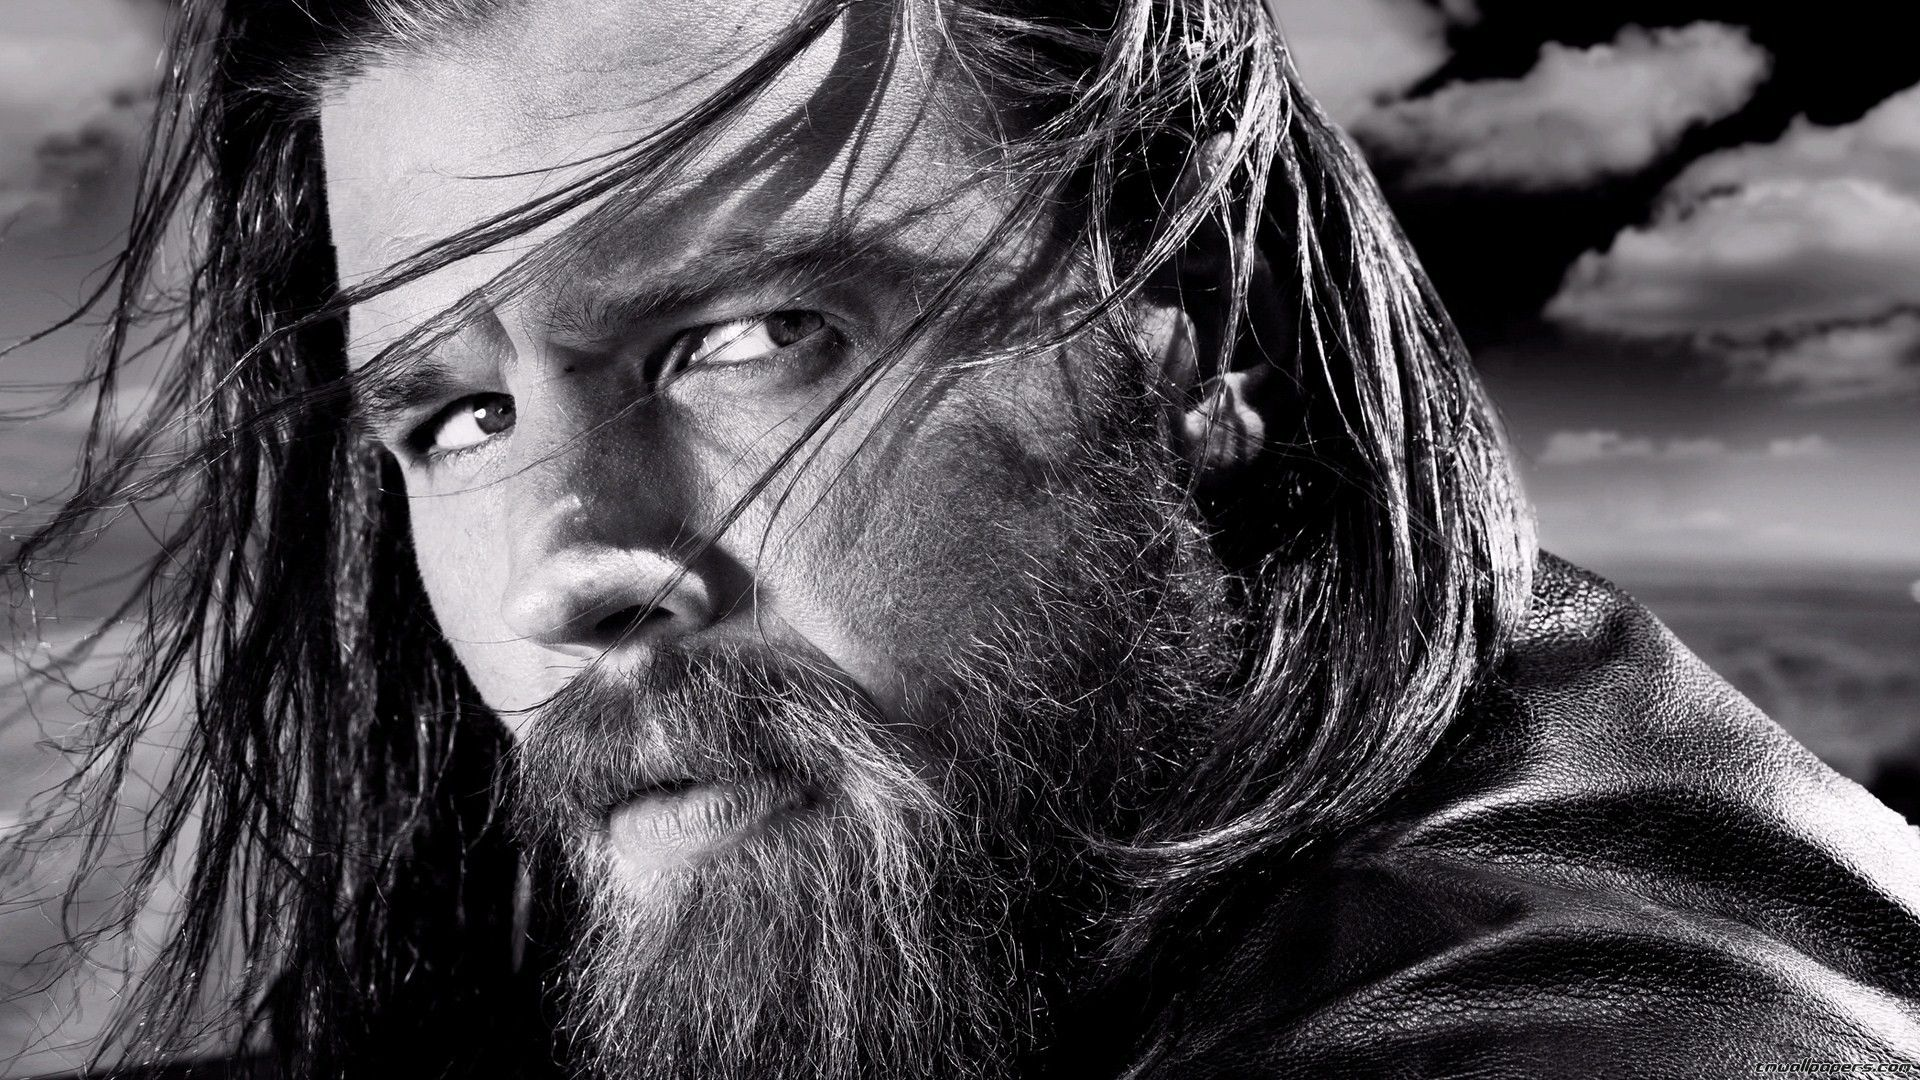 Charlie Hunnam Wallpapers: Charlie Hunnam Sons Of Anarchy Wallpapers